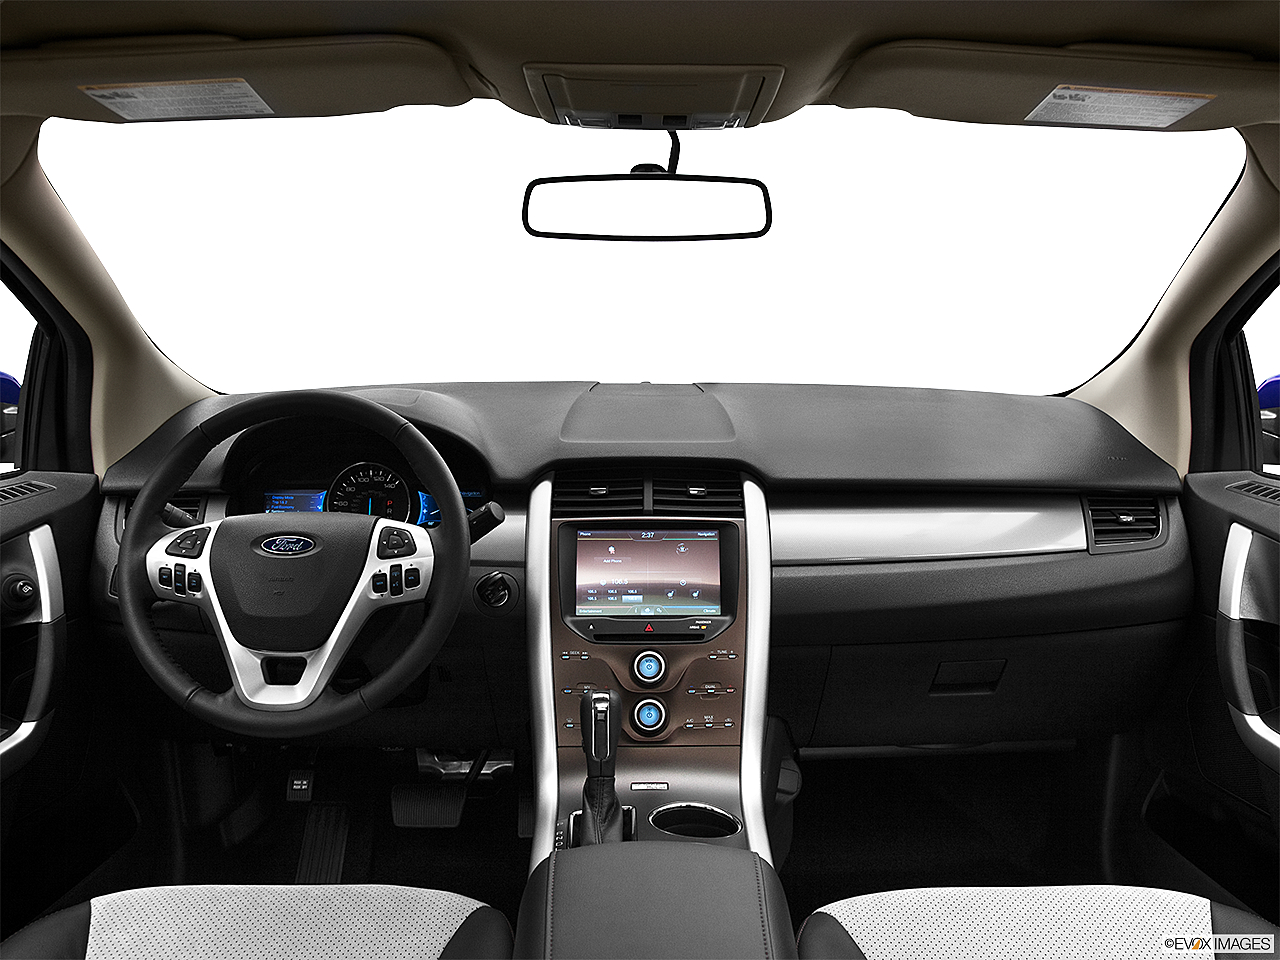 2013 Ford Edge SEL, centered wide dash shot